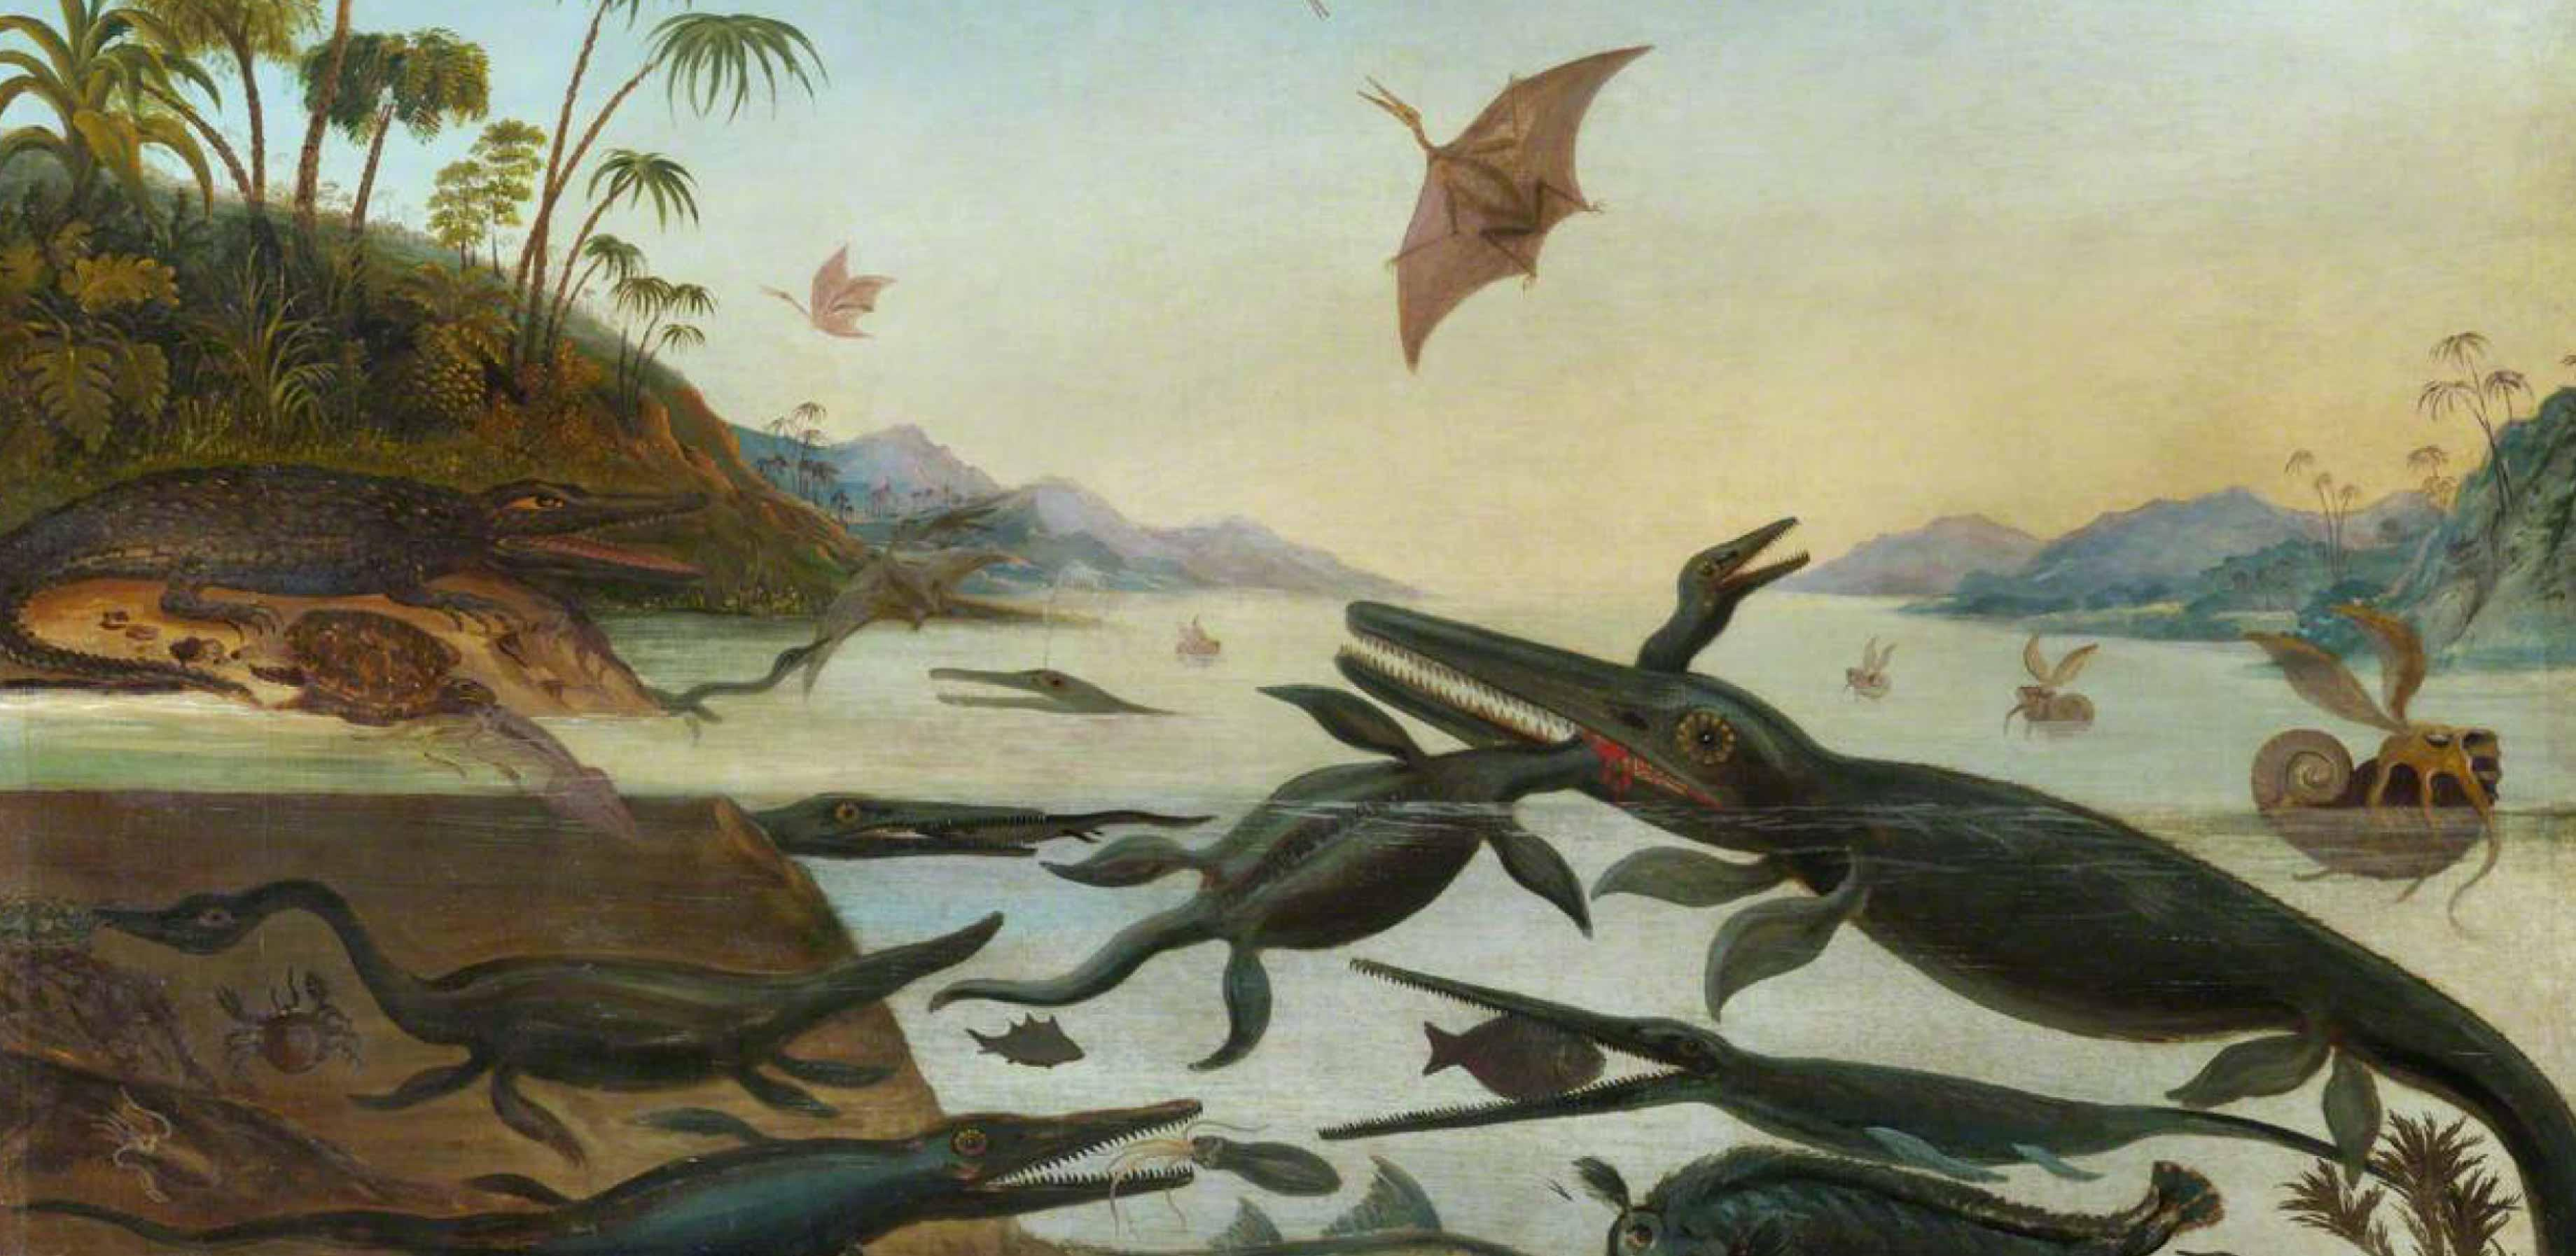 Painting of Ancient Dorsetshire 'Duria Antiquior' by Robert Farren, showing a range of sea creatures snapping away at fish alongside a forested coast.